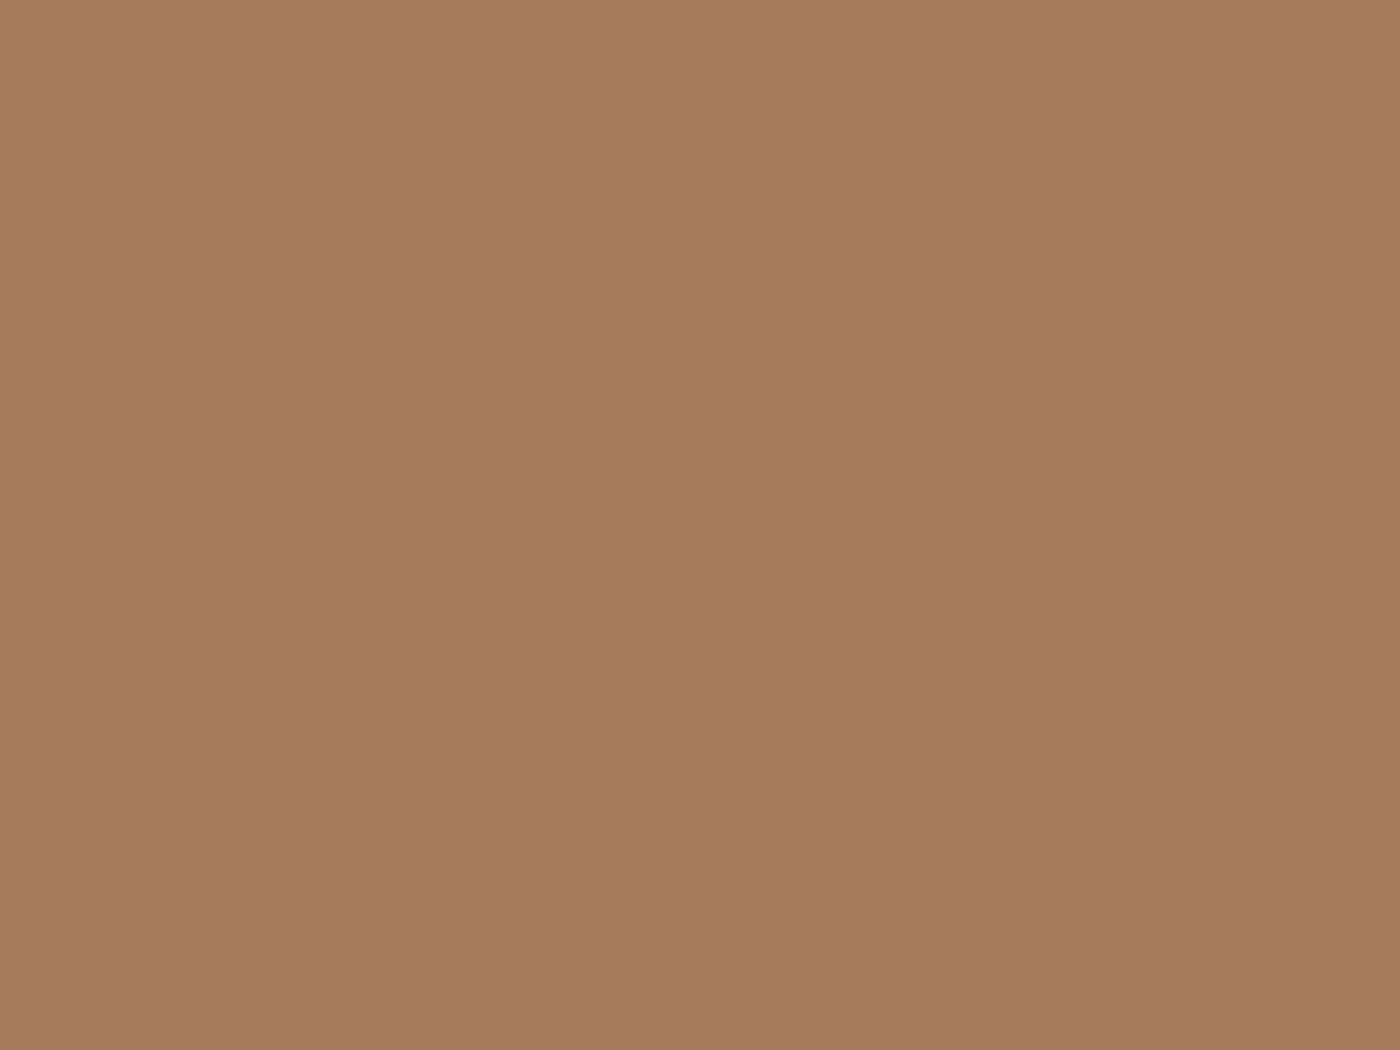 1400x1050 Tuscan Tan Solid Color Background